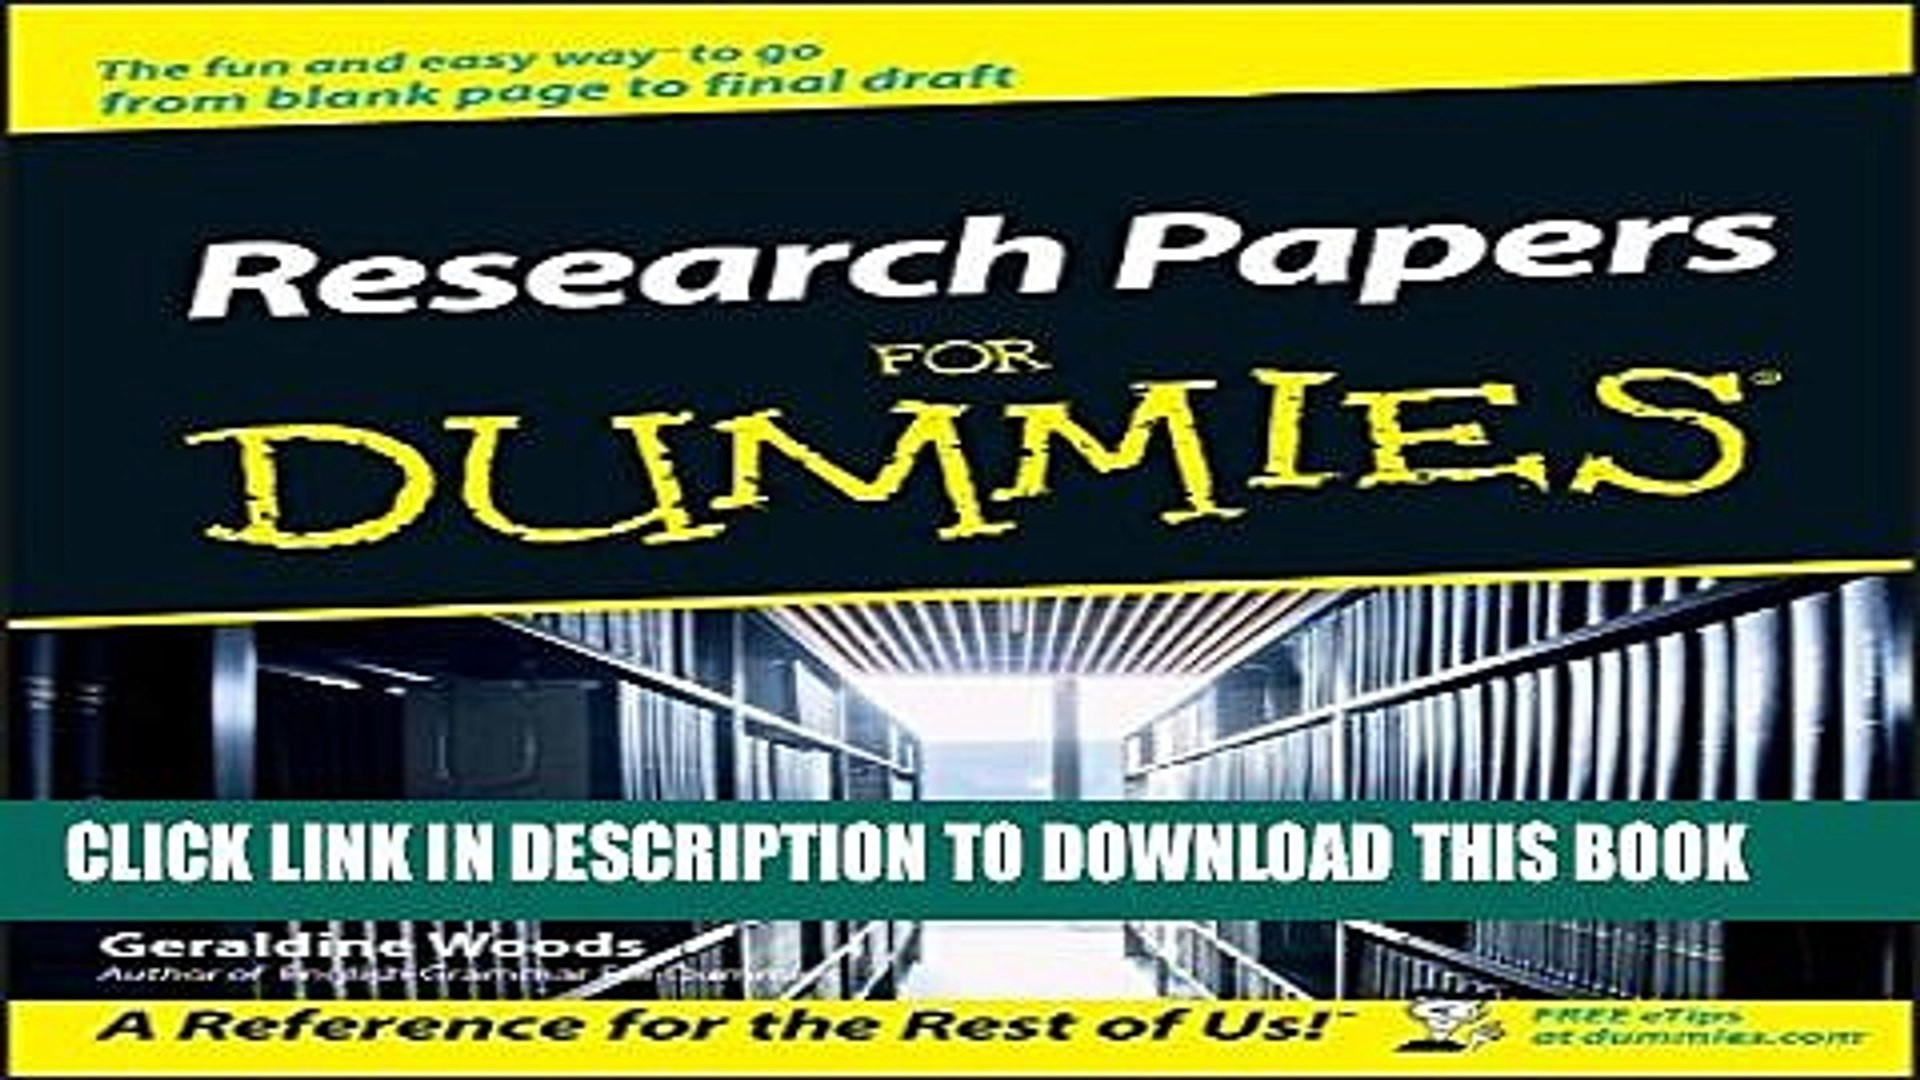 007 Research Paper Papers For Dummies X1080 Unforgettable Pdf Download Free 1920